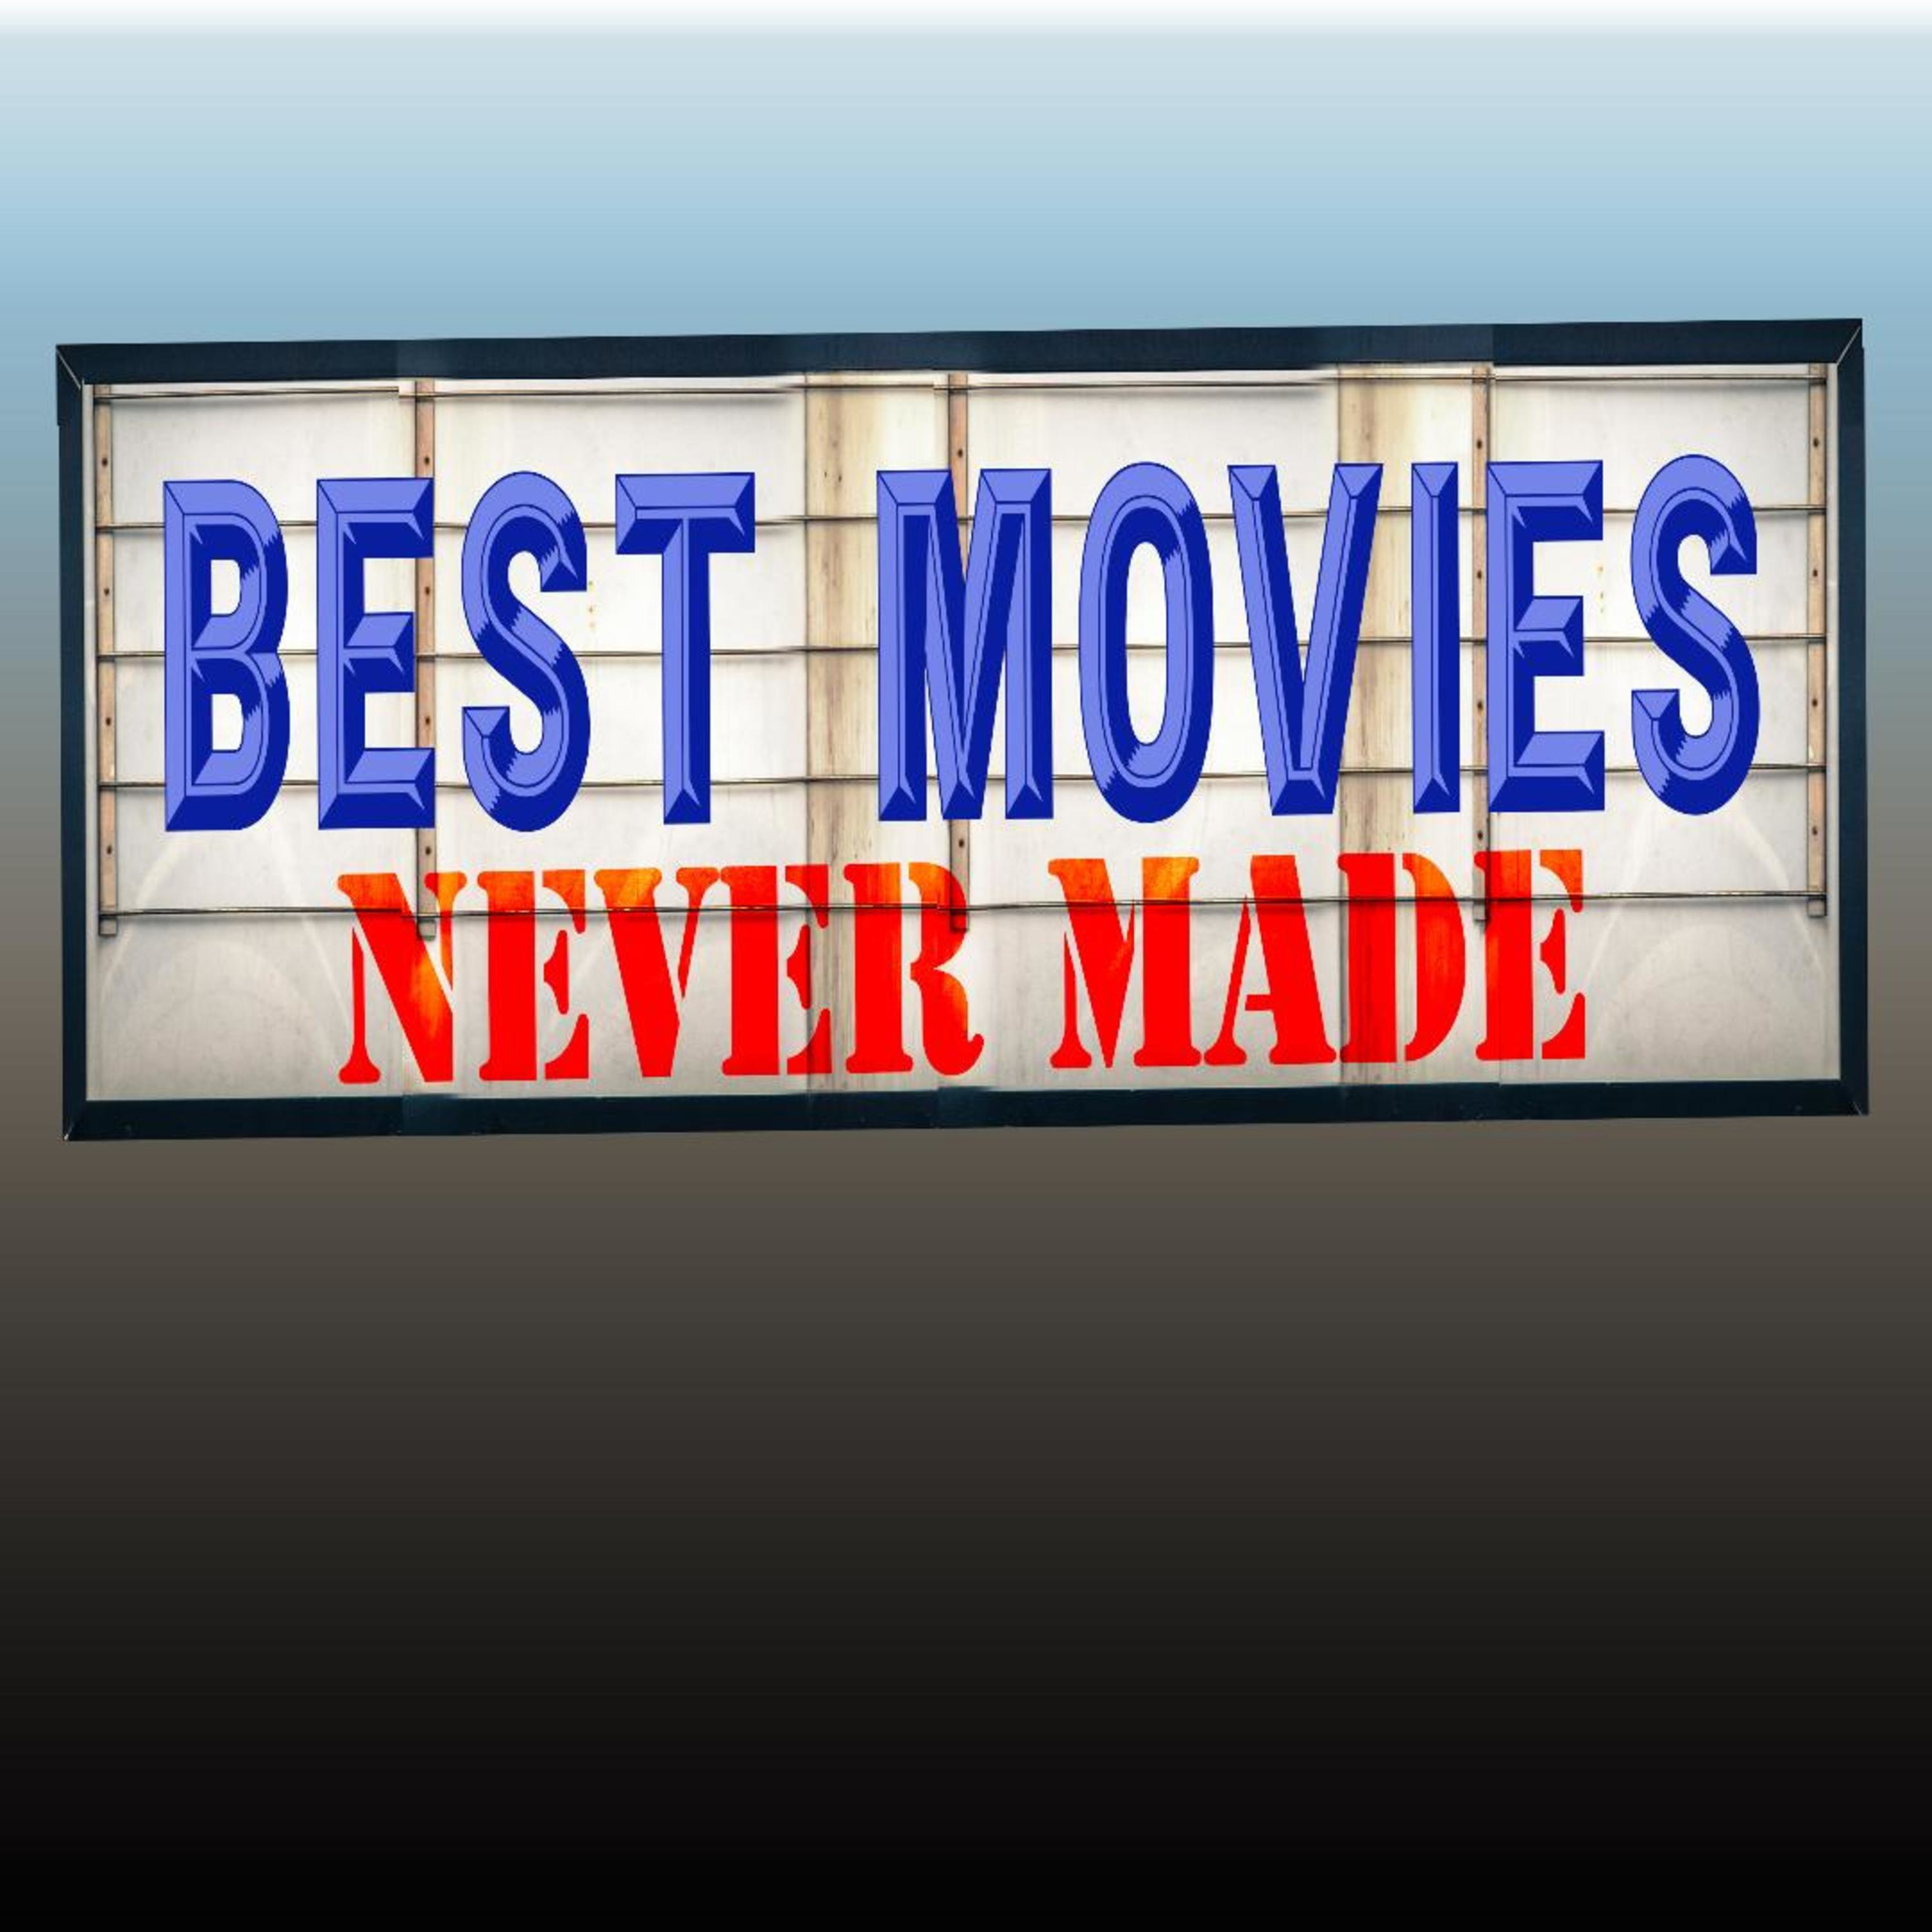 BEST MOVIES NEVER MADE